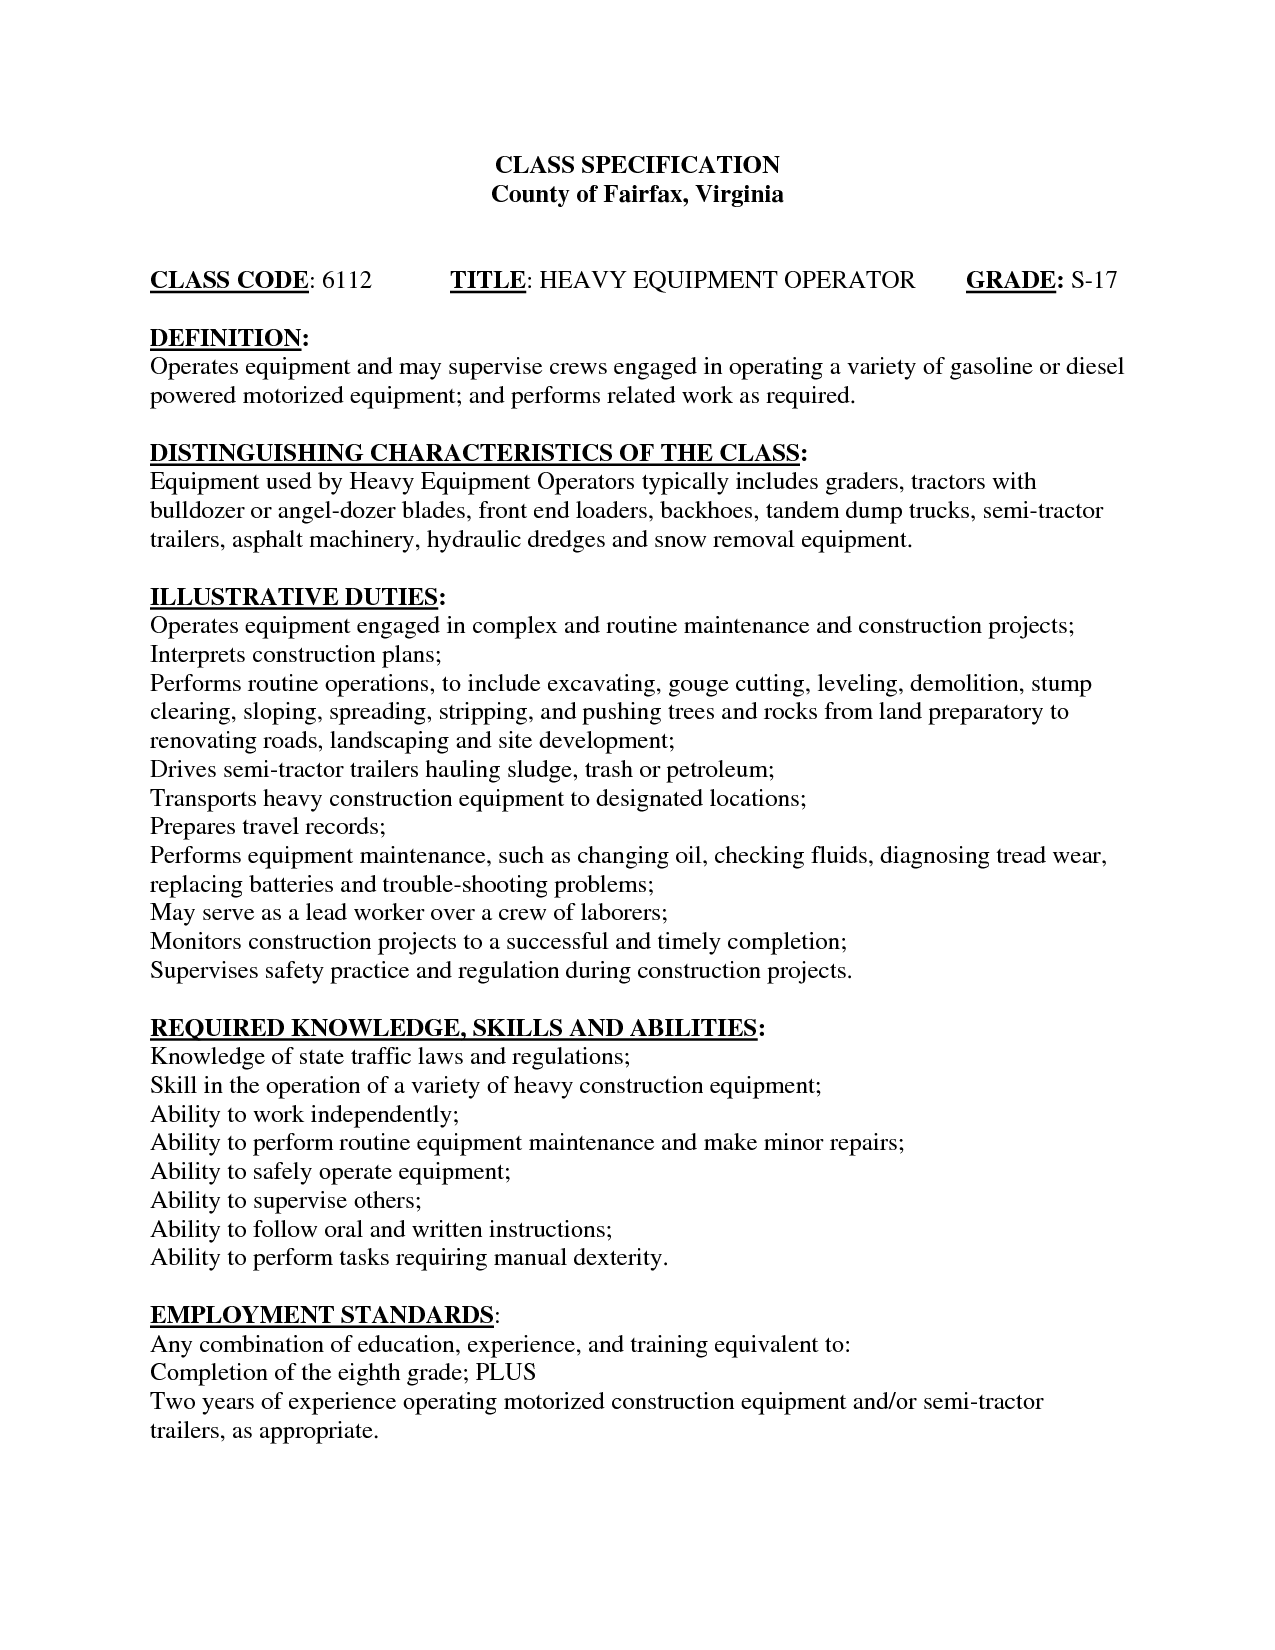 heavy equipment operator resume example samplebusinessresume com